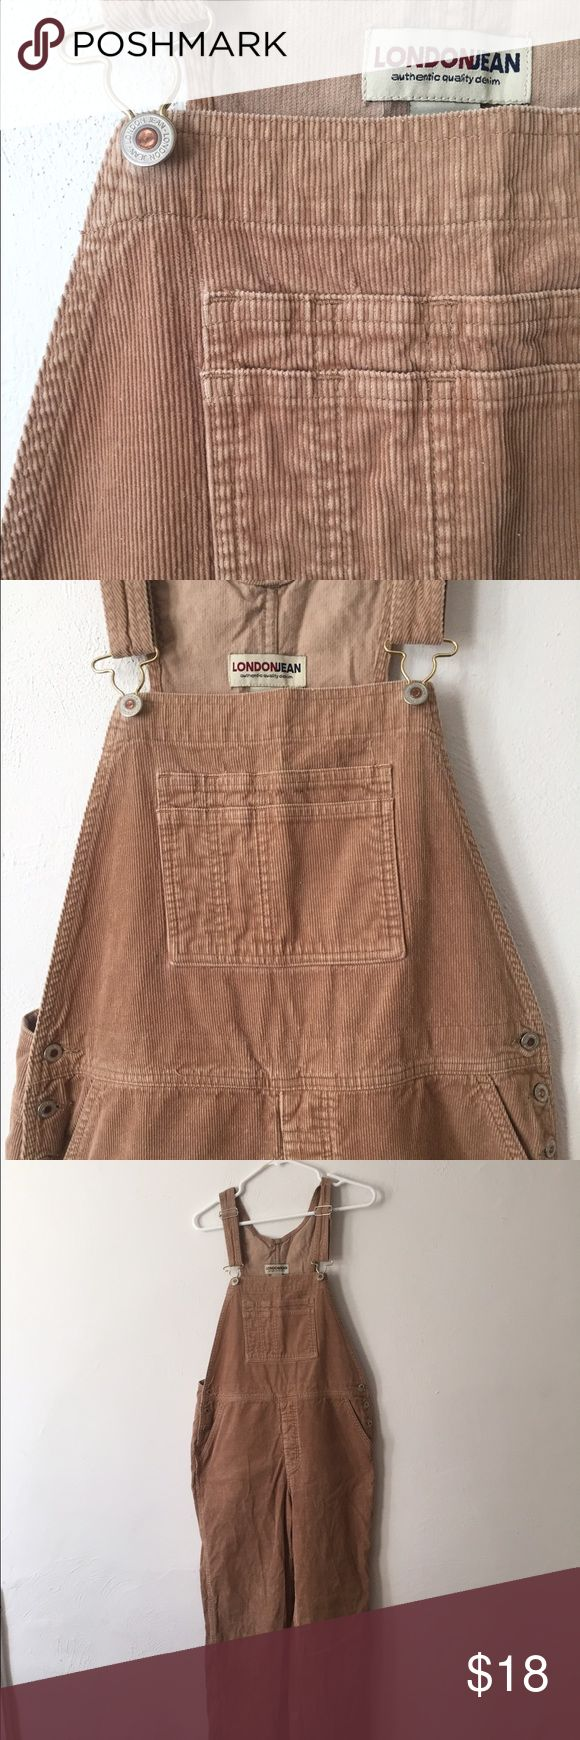 Vintage Tan Corduroy Overalls Just a little more unique than classic blue jean overalls, these are easily incorporated into your fall wardrobe! Fits like an 8/10 with adjustable straps. Vintage Jeans Overalls